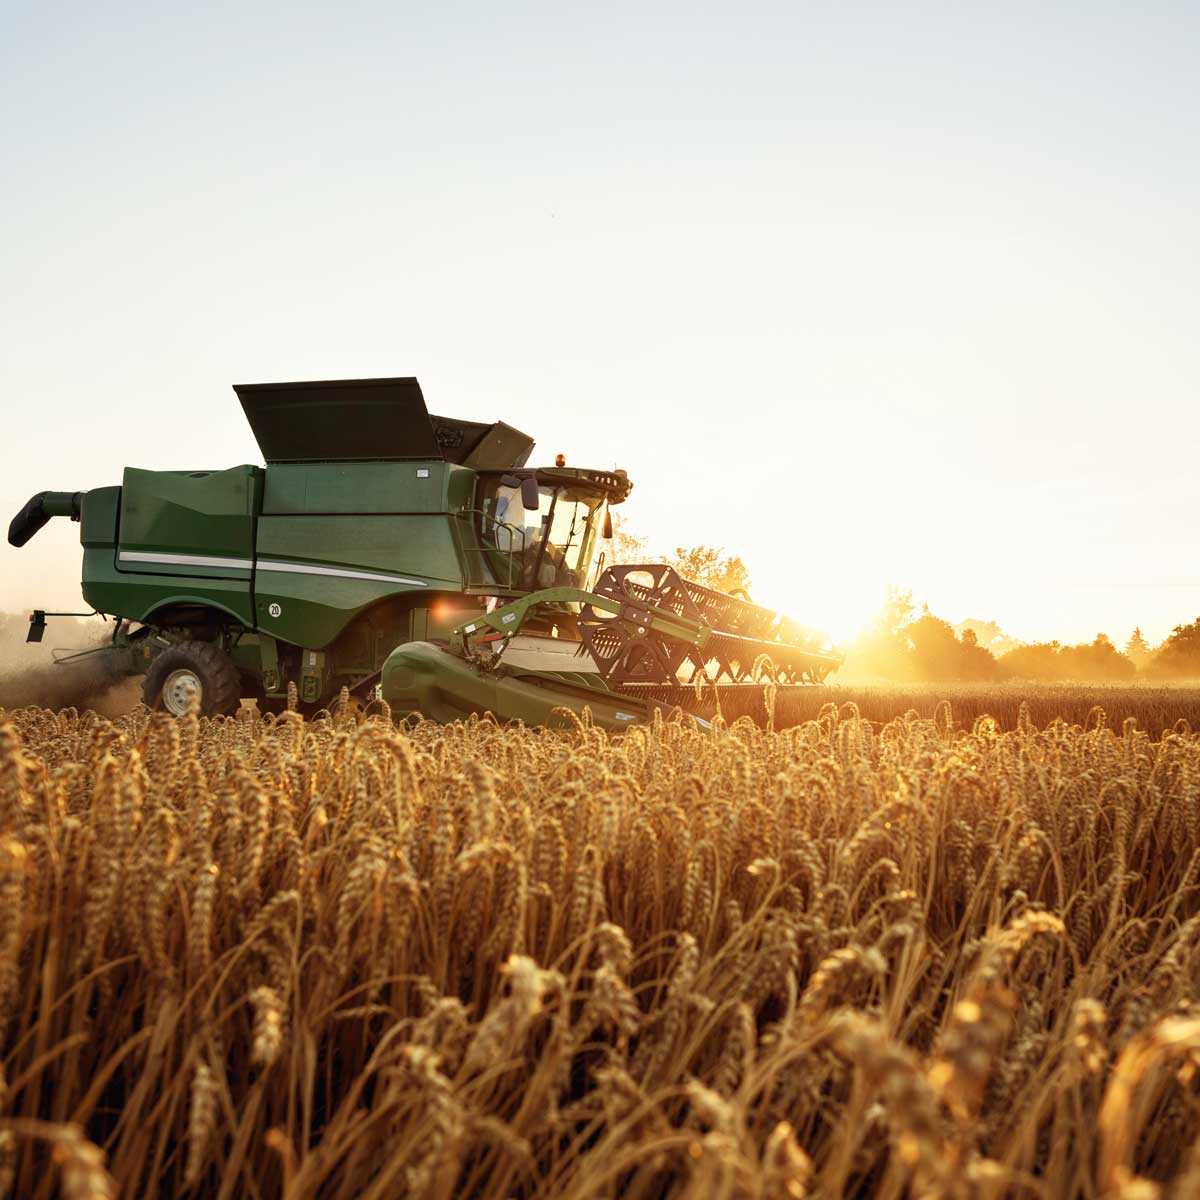 feed-and-grain-agriculture-industry-technology; tractor pictured among grain field in sunset